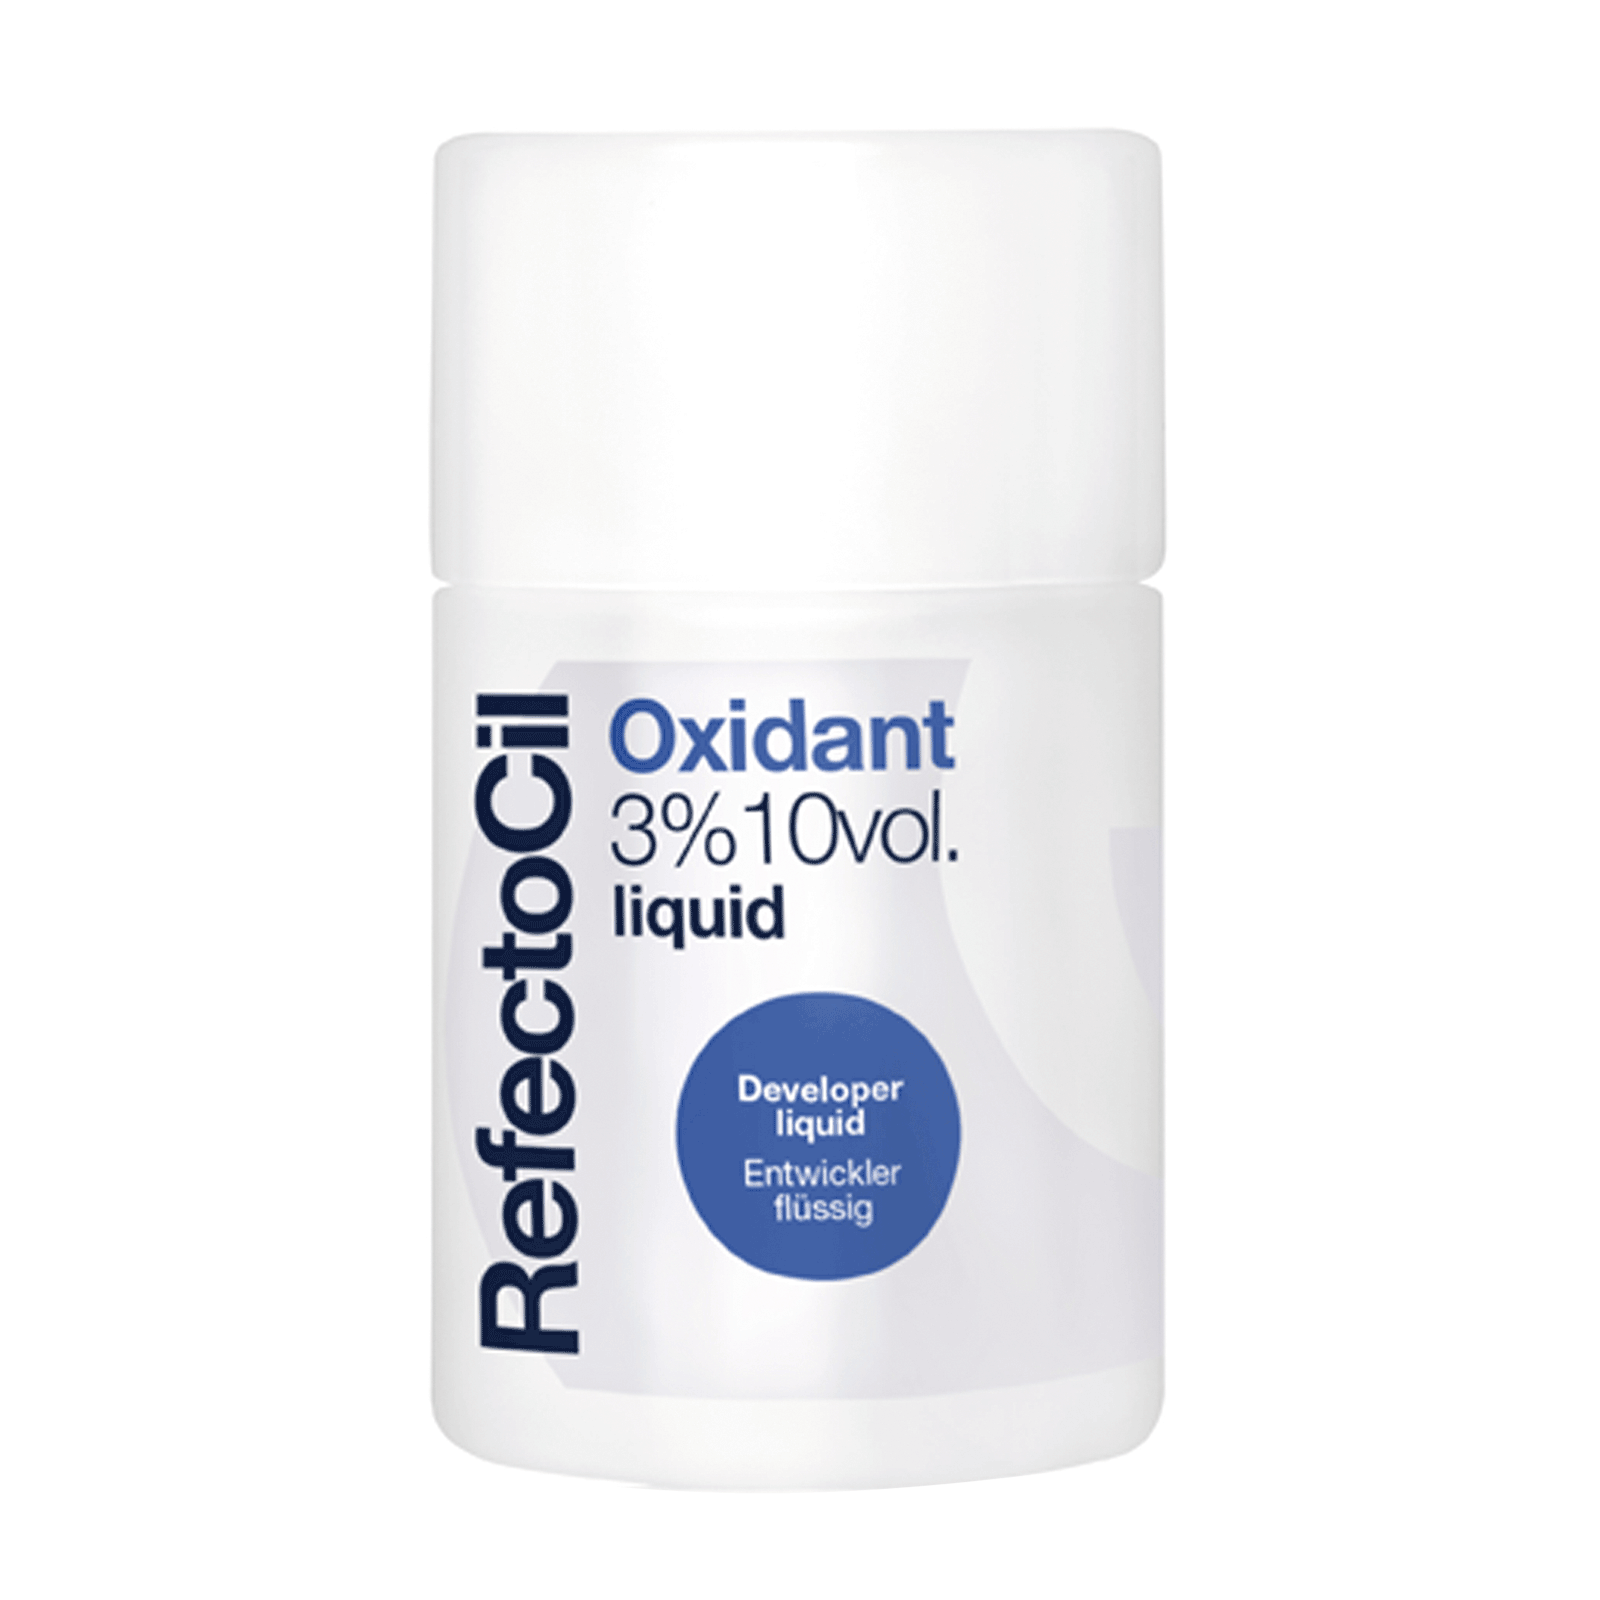 RefectoCil Oxidant 3% 10 Volume Liquid